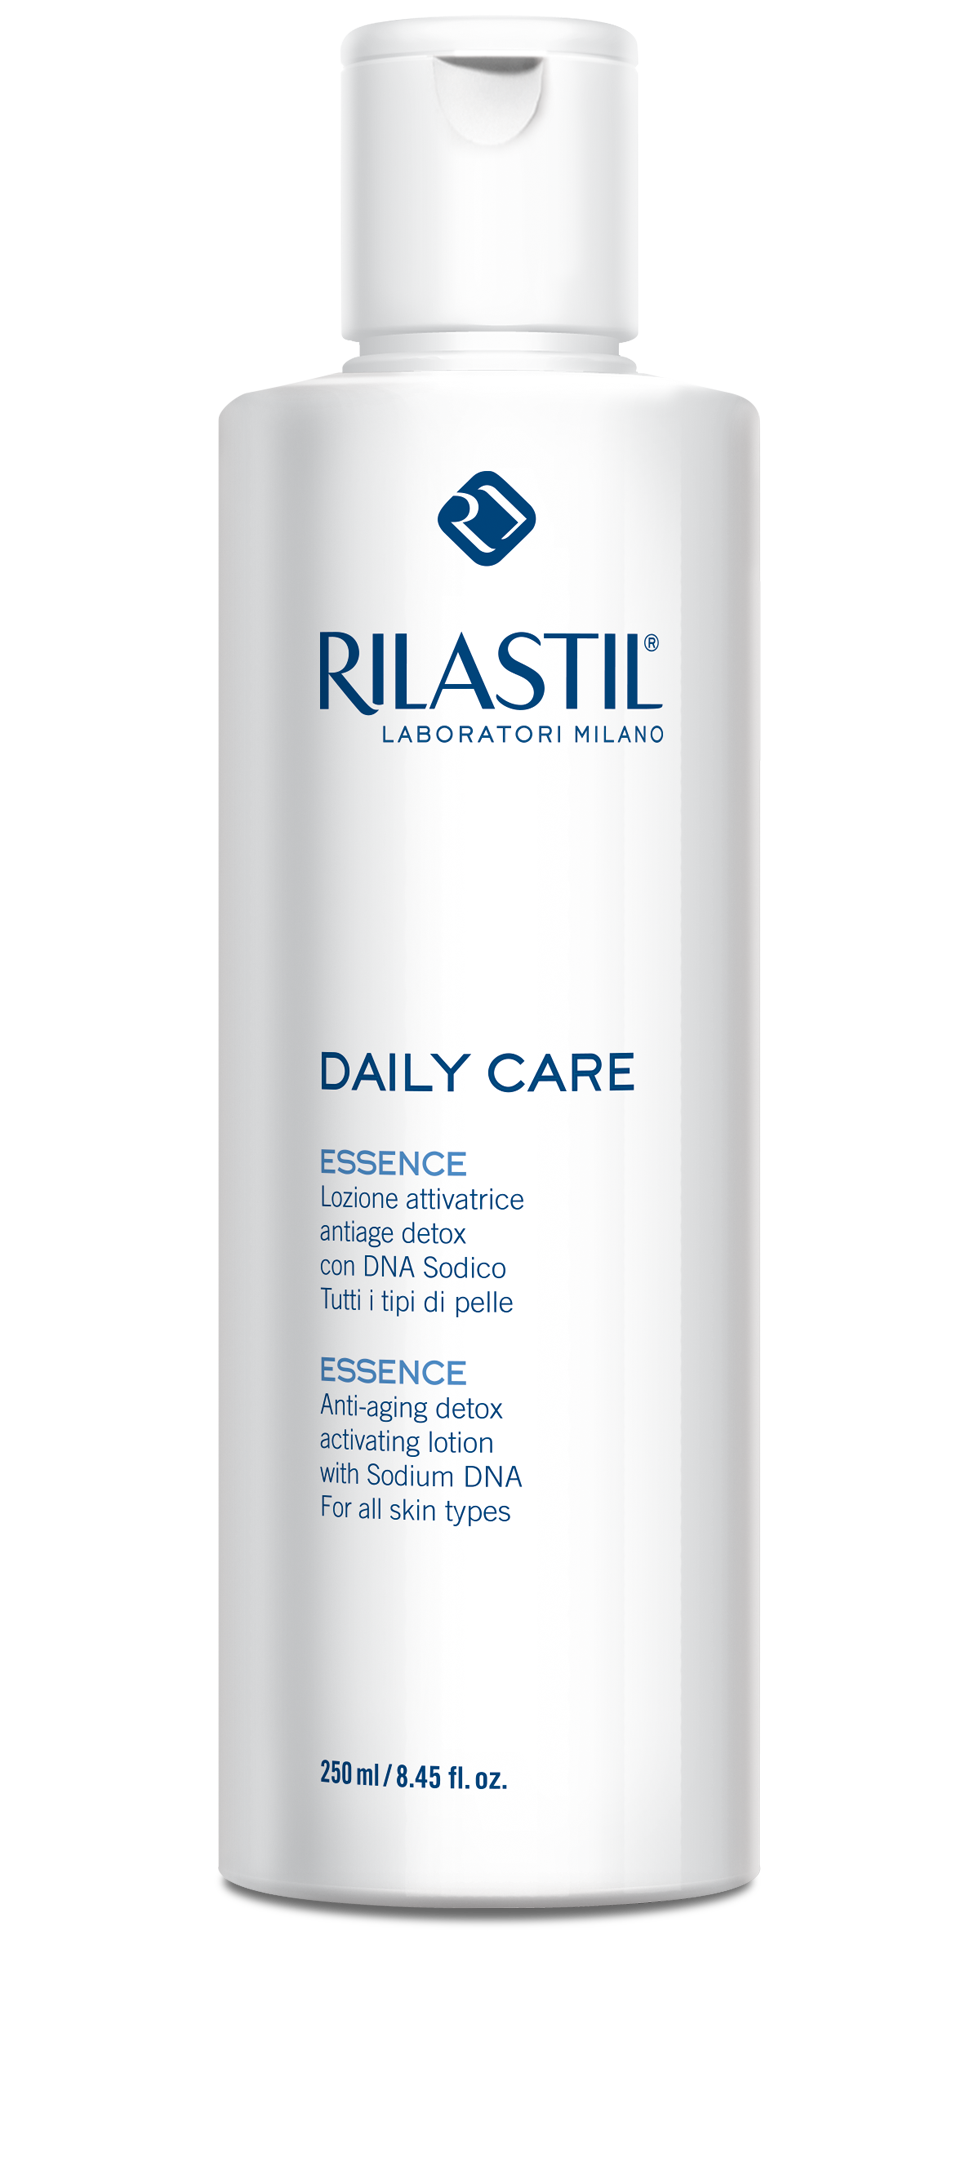 rilastil-daily-care-essence-250ml